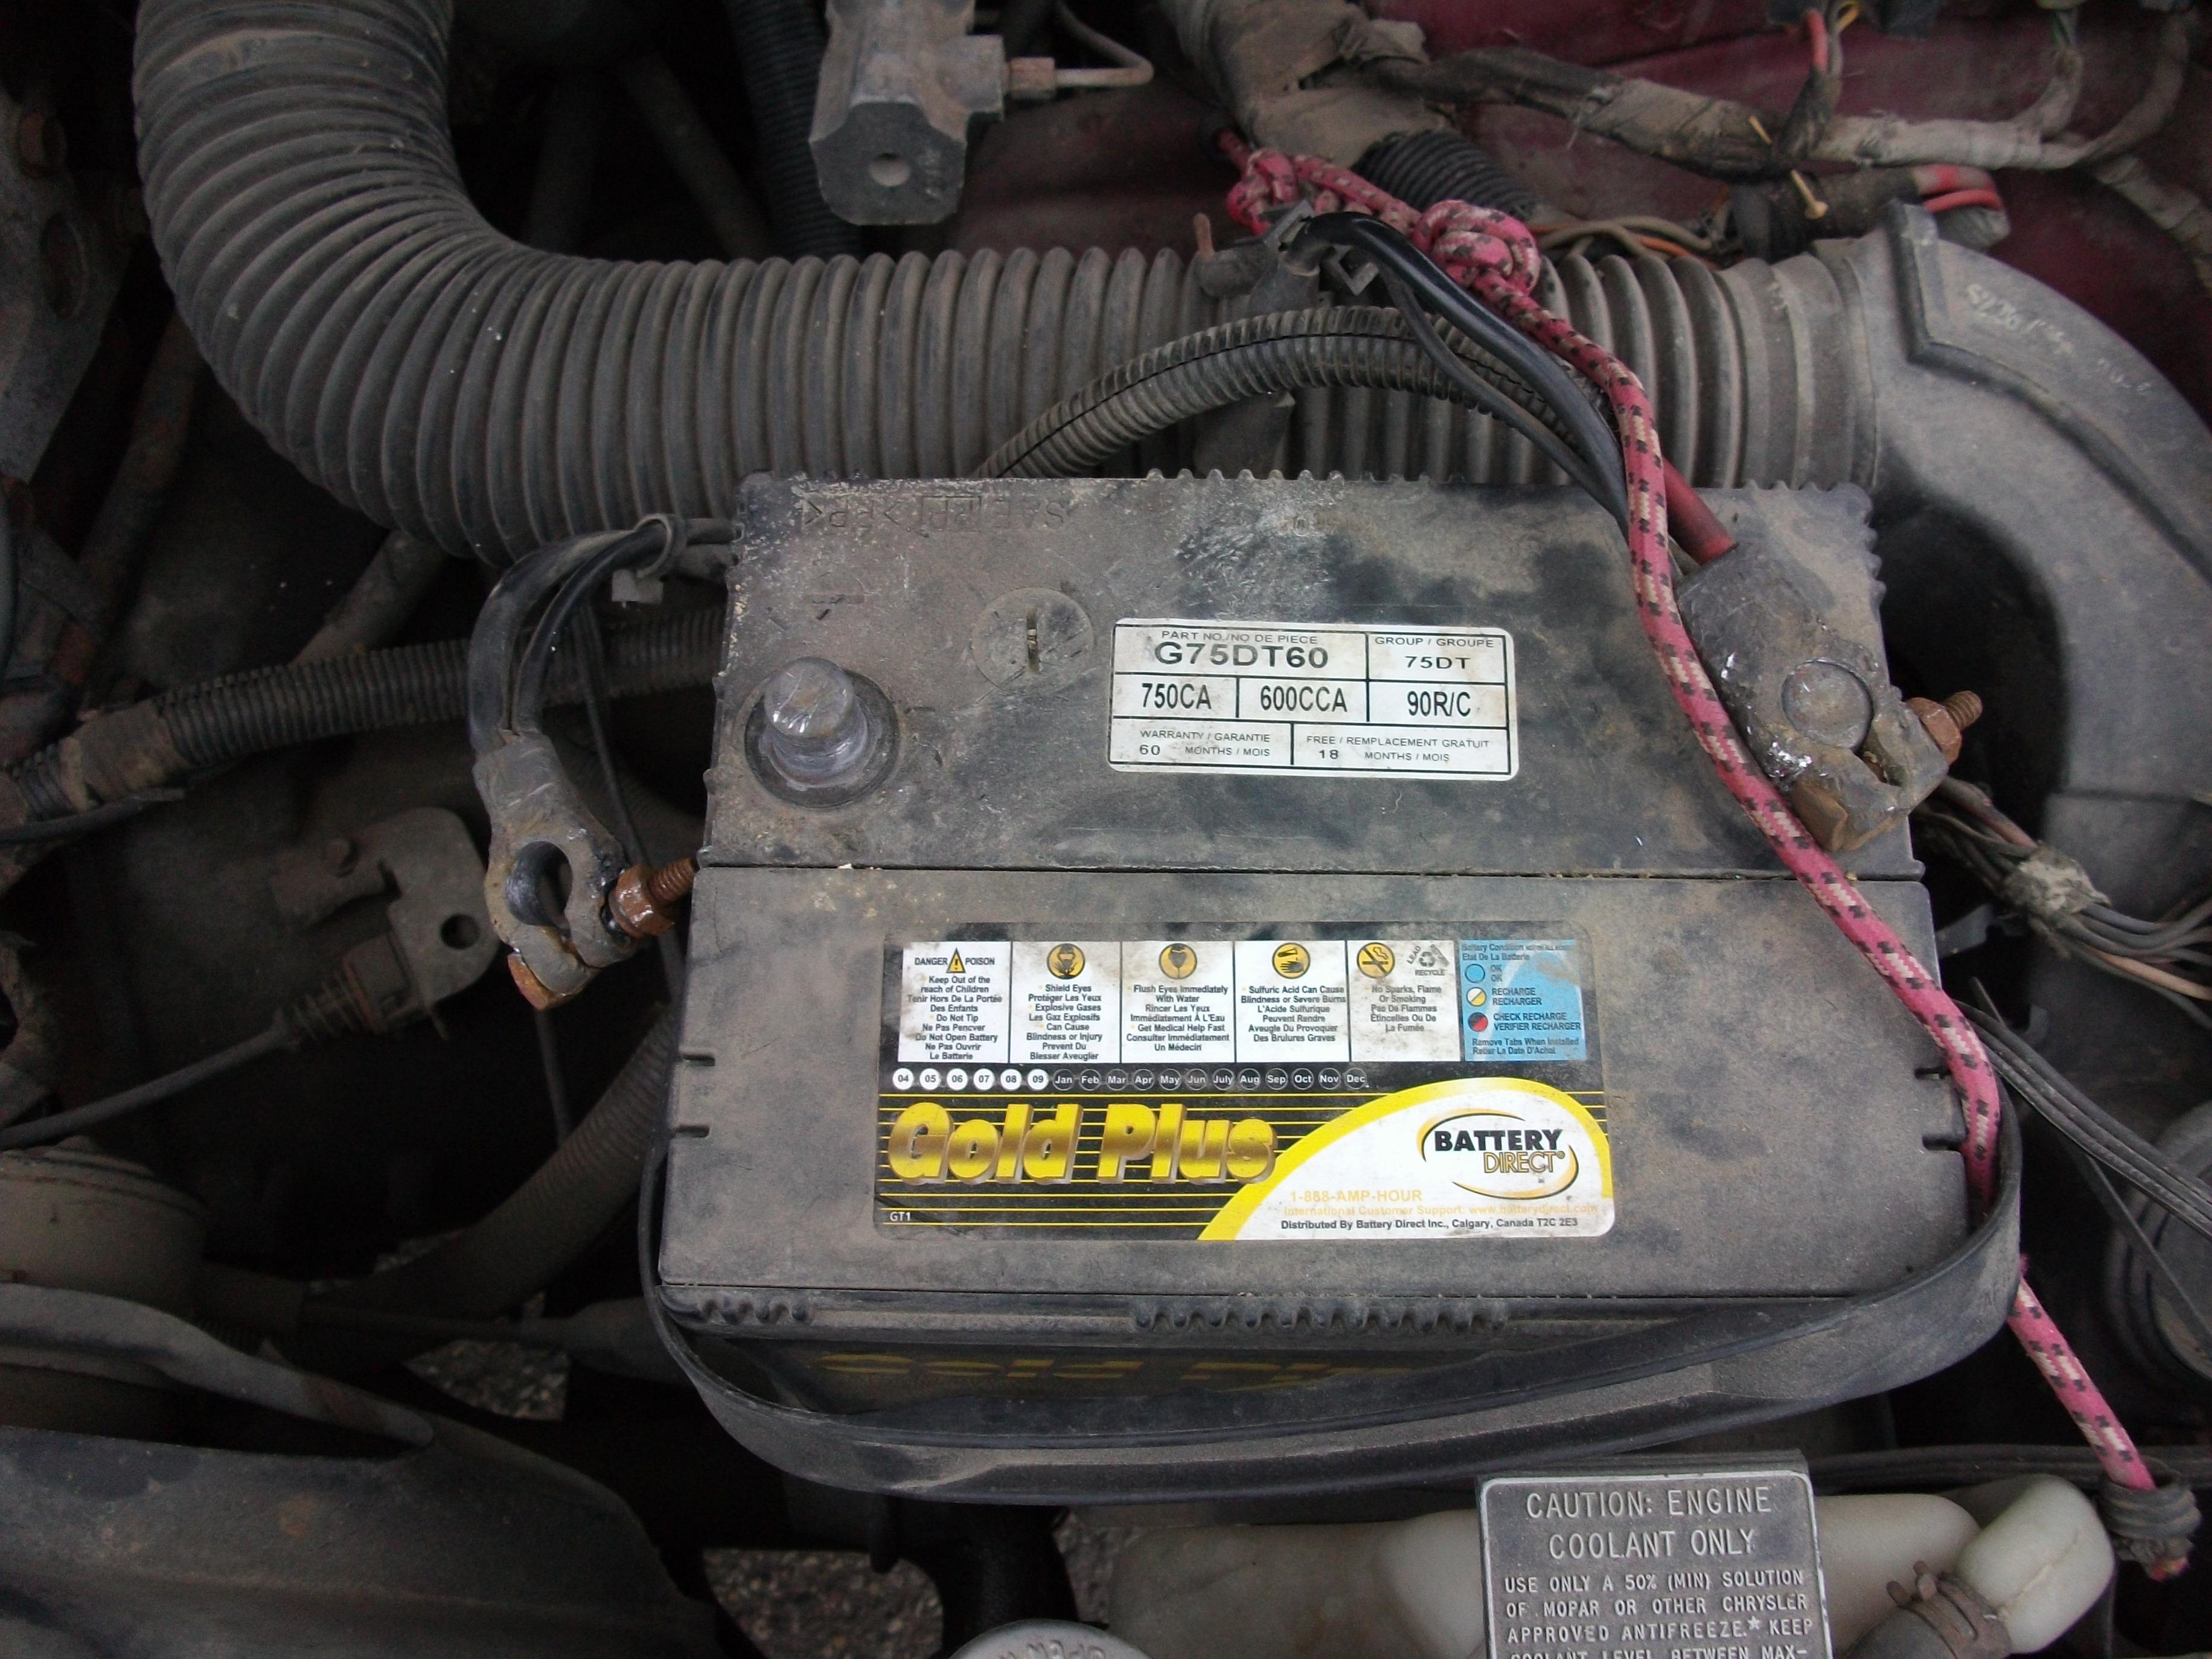 Keep in mind reseting the check engine light by disconnecting the battery may not work on all cars.